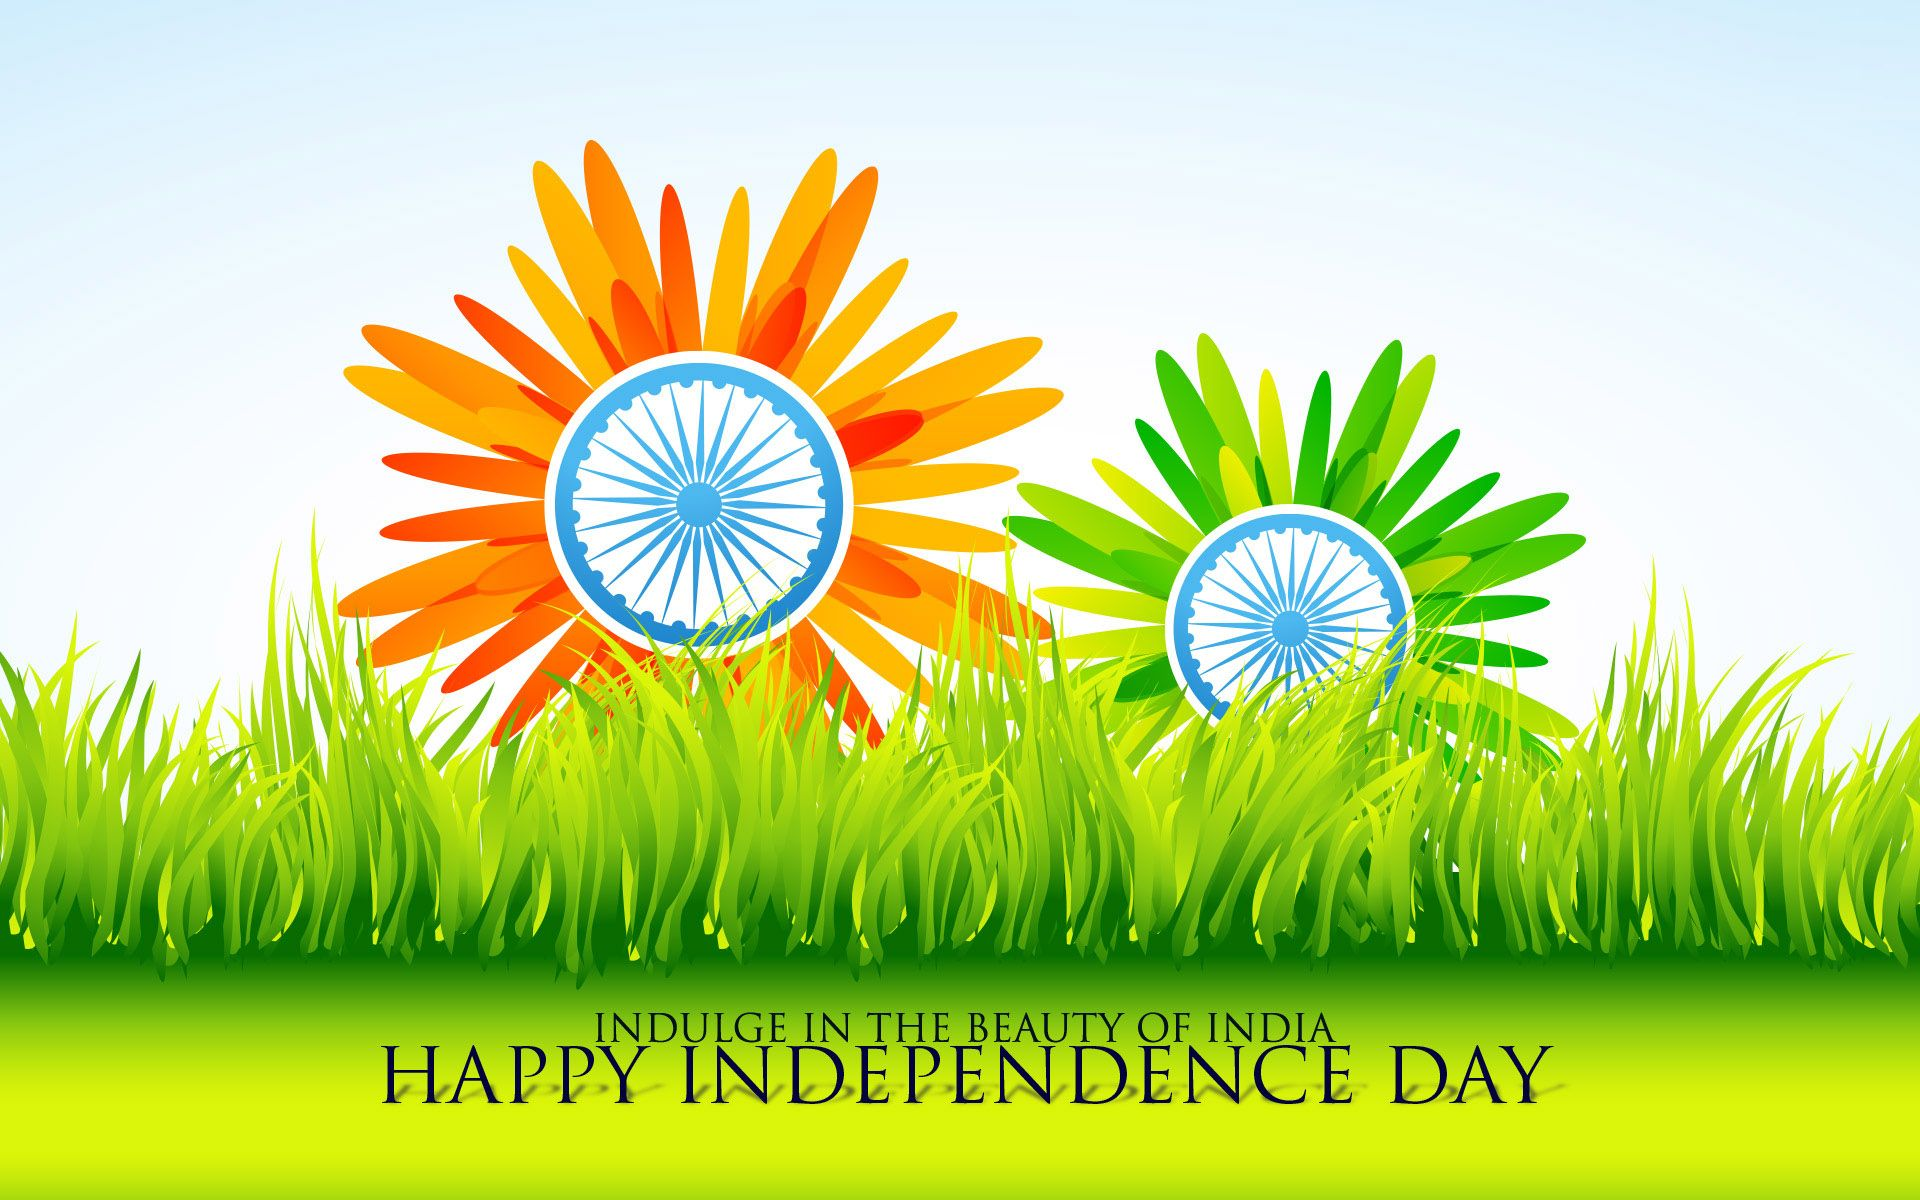 17 best ideas about independence day slogans n 17 best ideas about independence day slogans n independence day quotes independence day wishes and slogan on independence day